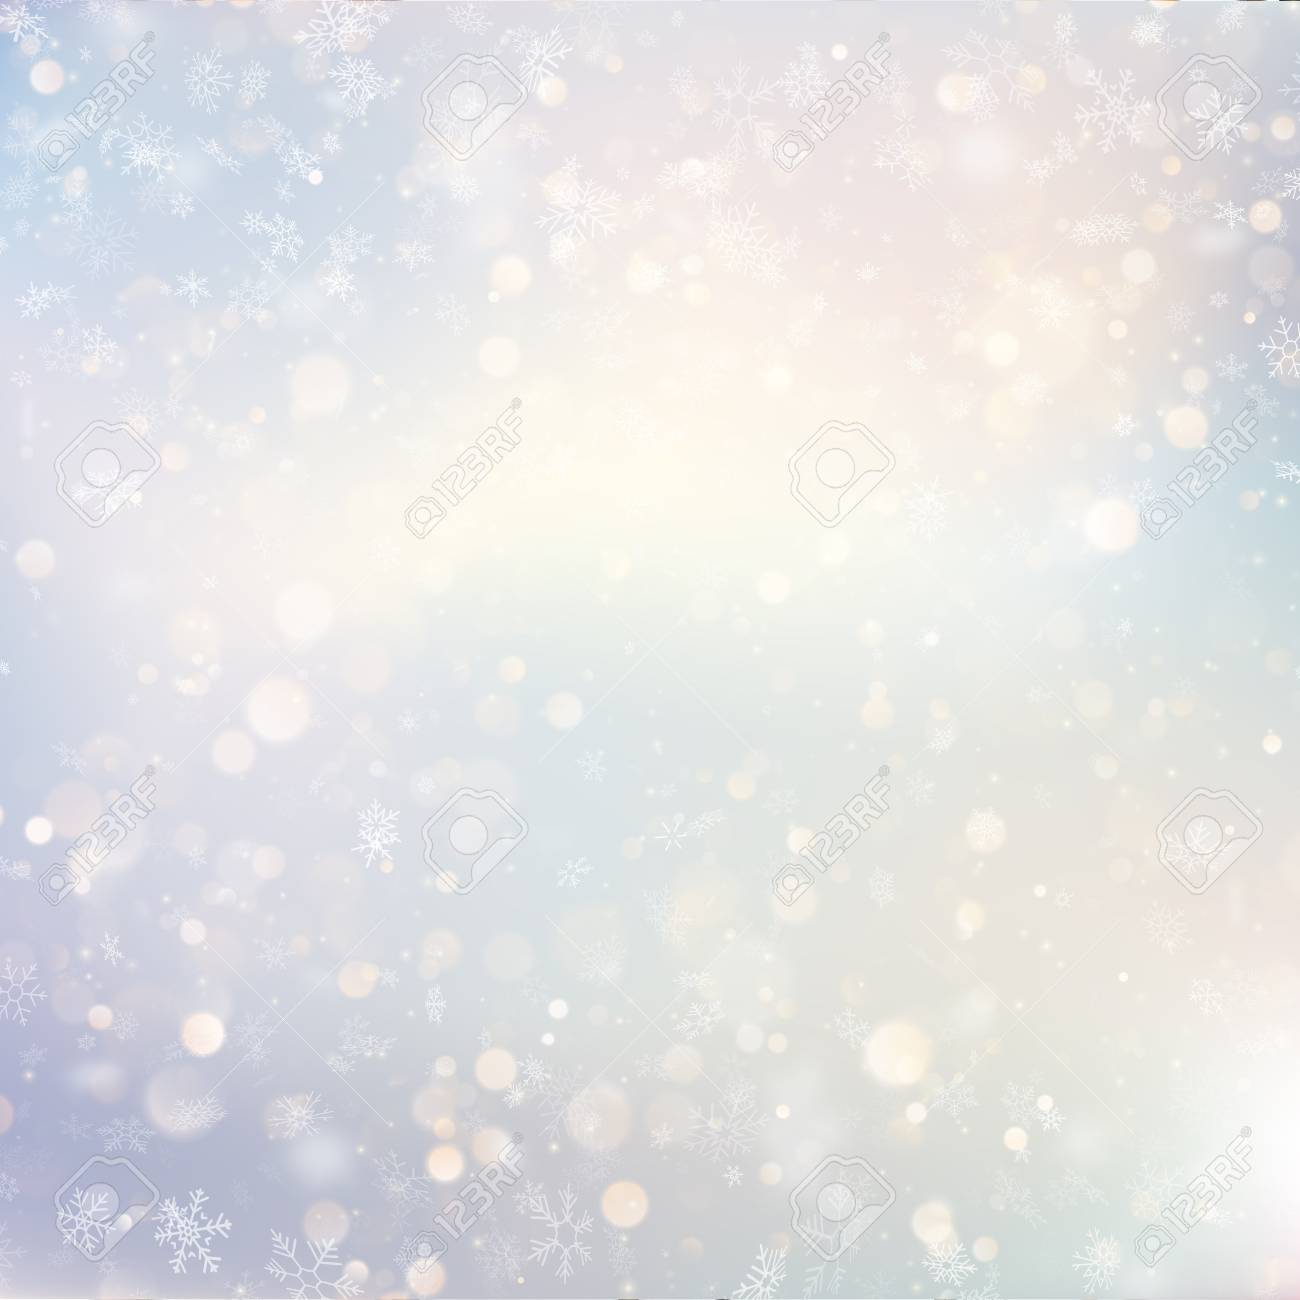 Christmas defocused snow light holiday glowing winter background with blinking blurred snowflakes. Holiday glowing backdrop. EPS 10 vector file - 125984657